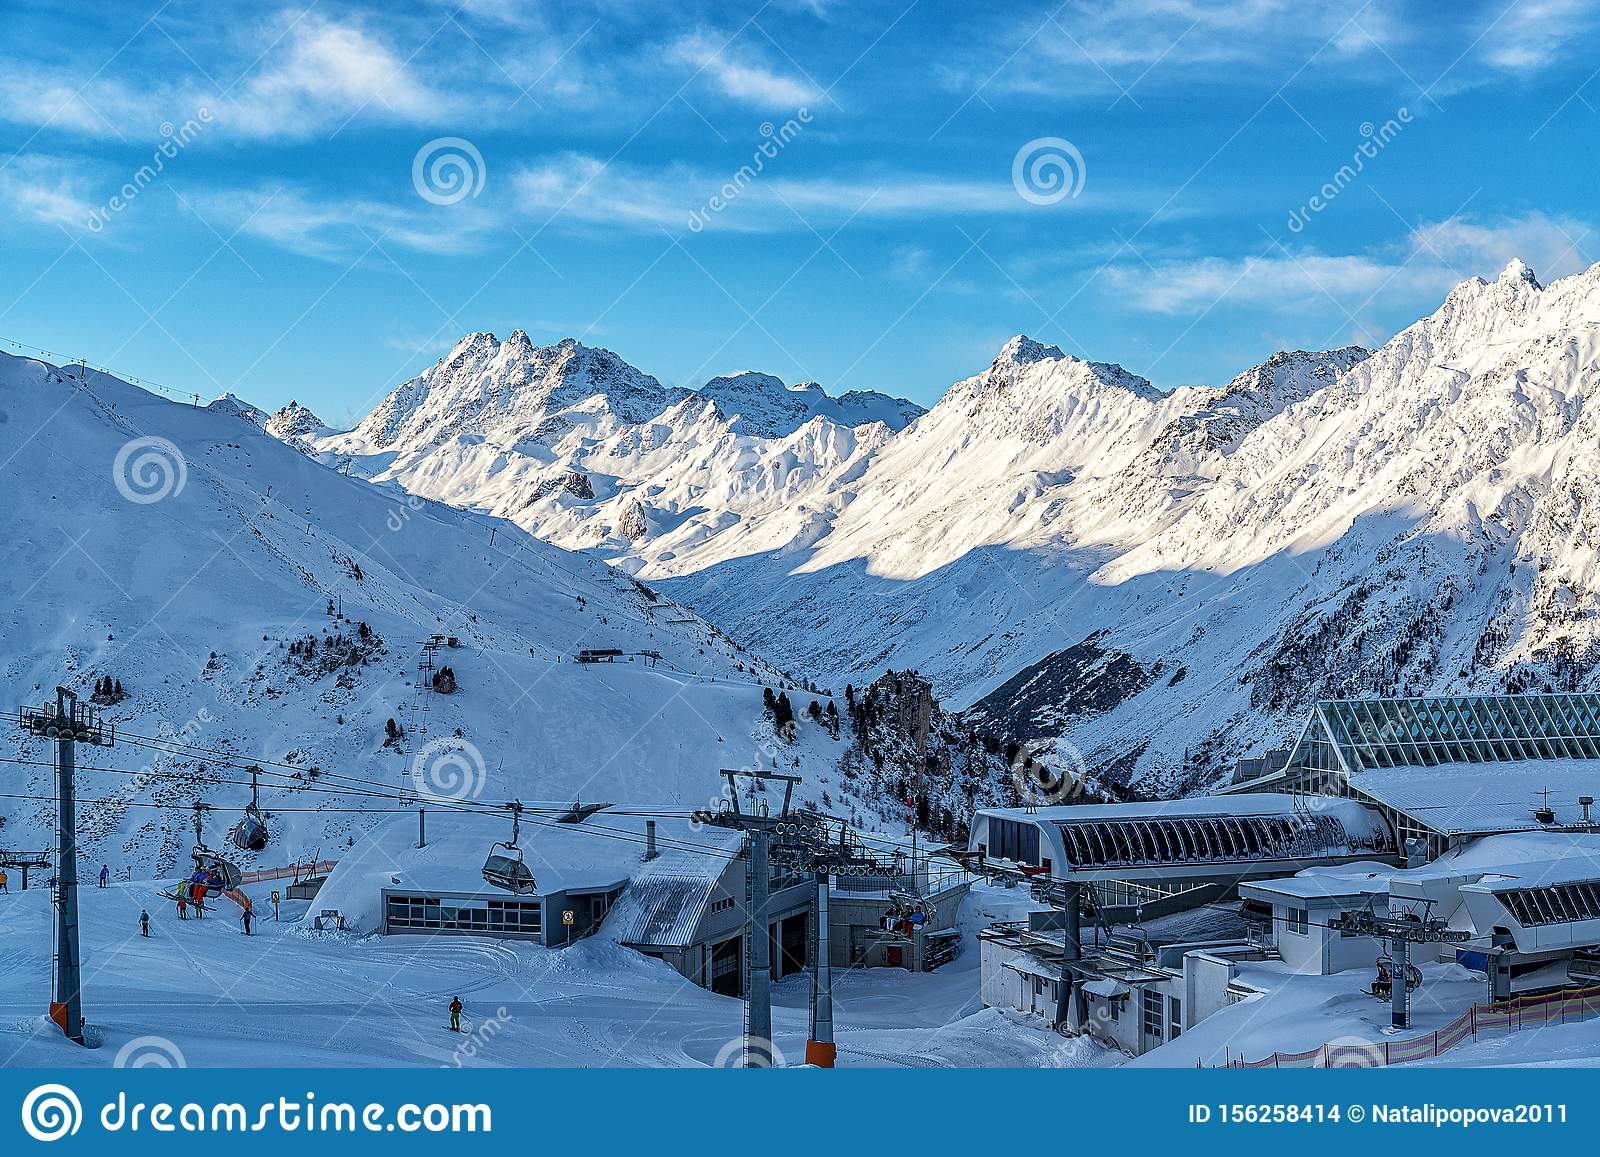 Panorama of the Alpine mountains in the evening at the ski resort of Ischgl, Austria